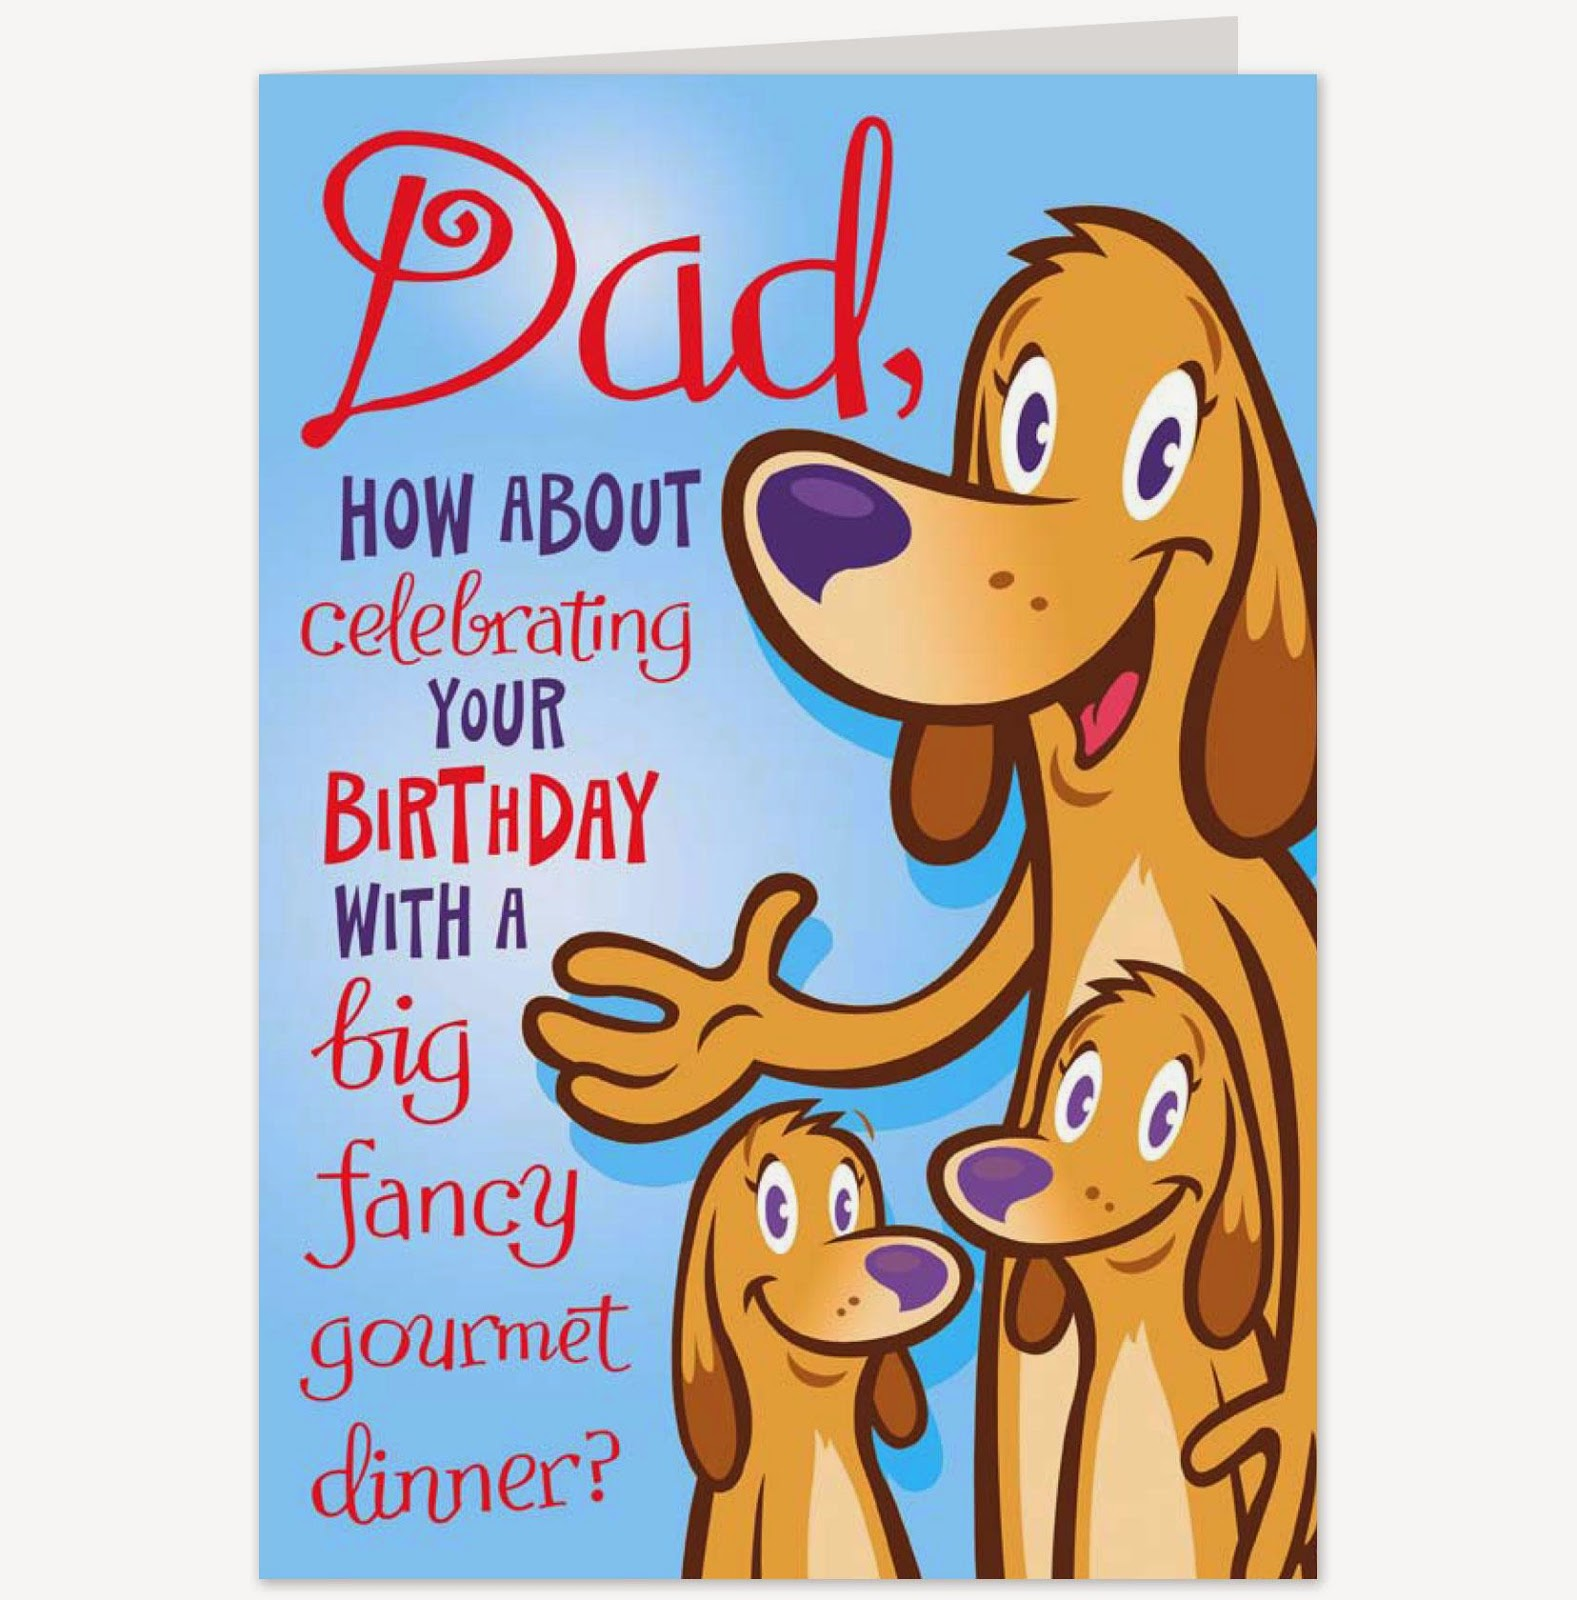 Funny Birthday Card For Dads Bad Dad Jokes Funny Card For: Birthday Cards For Dads